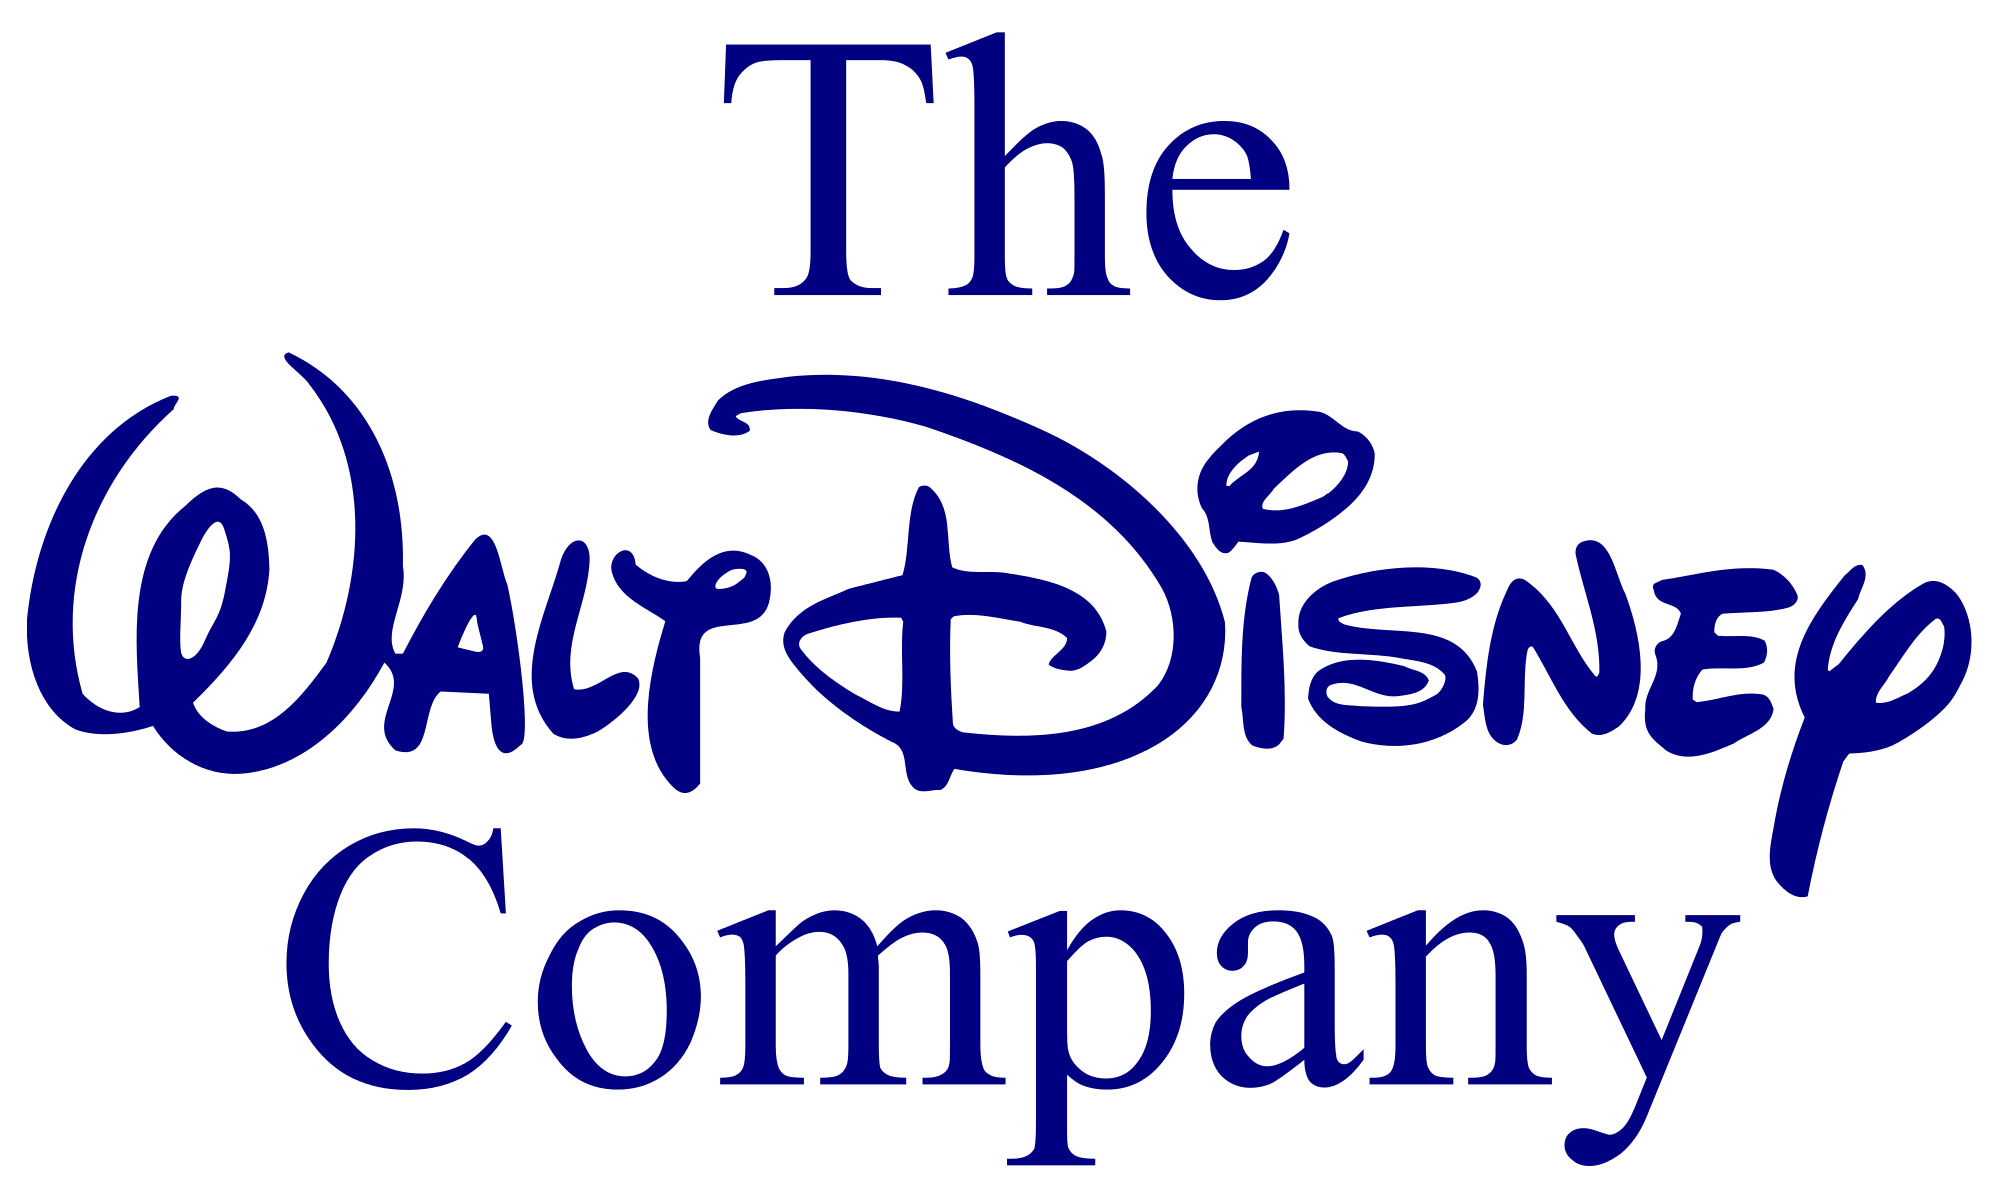 Walt disney png. File the waltdisney company